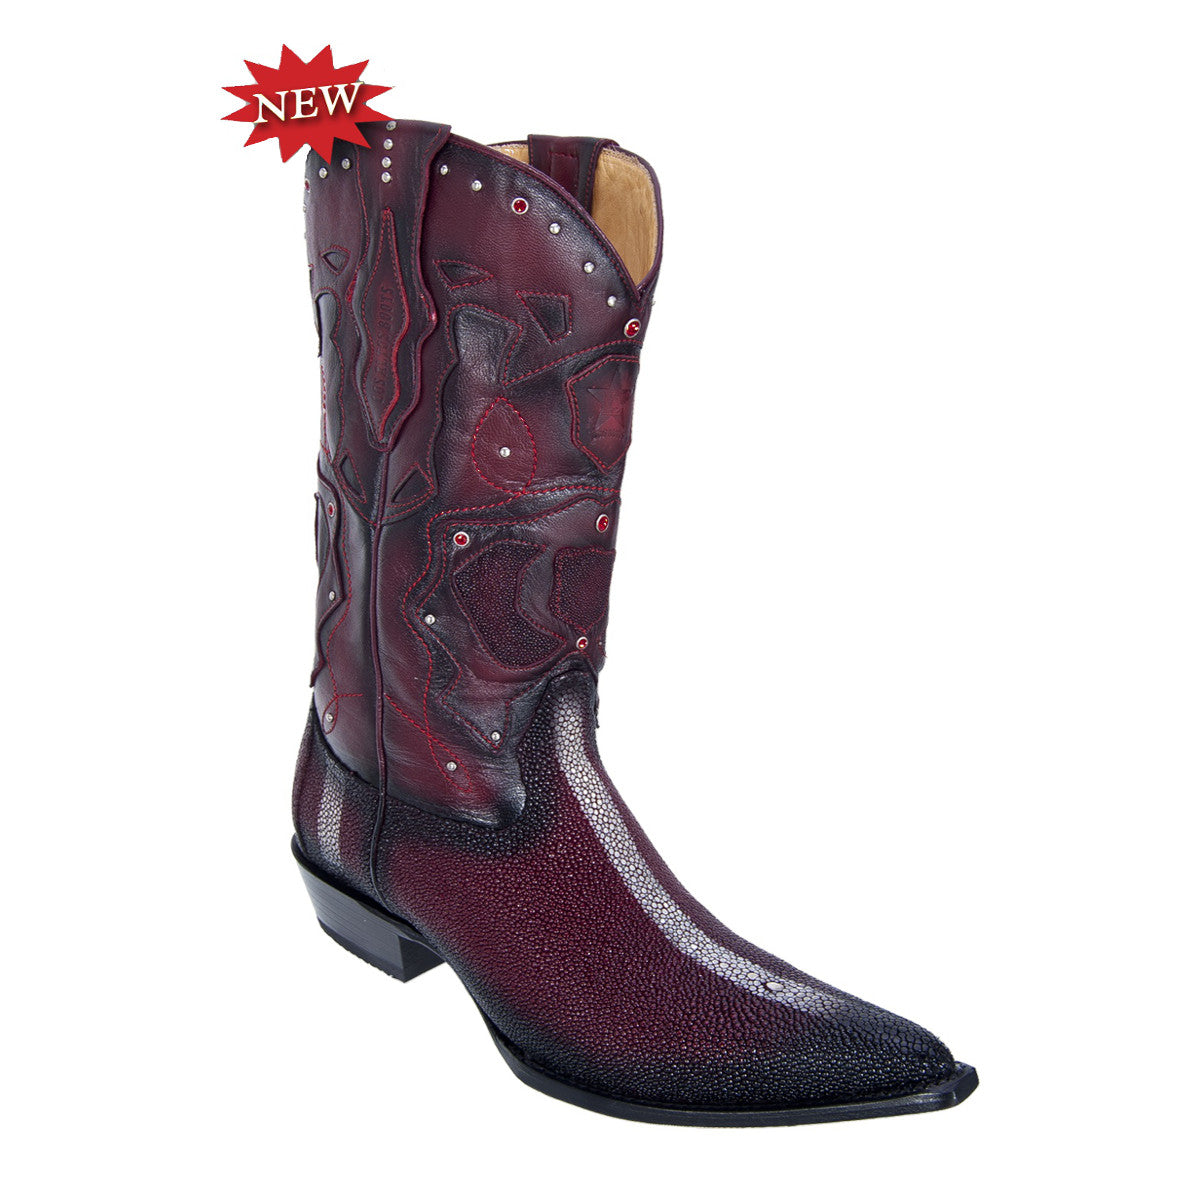 Los Altos Boots 3X Toe w/Cowboy Heel Stingray Rowstone Finish